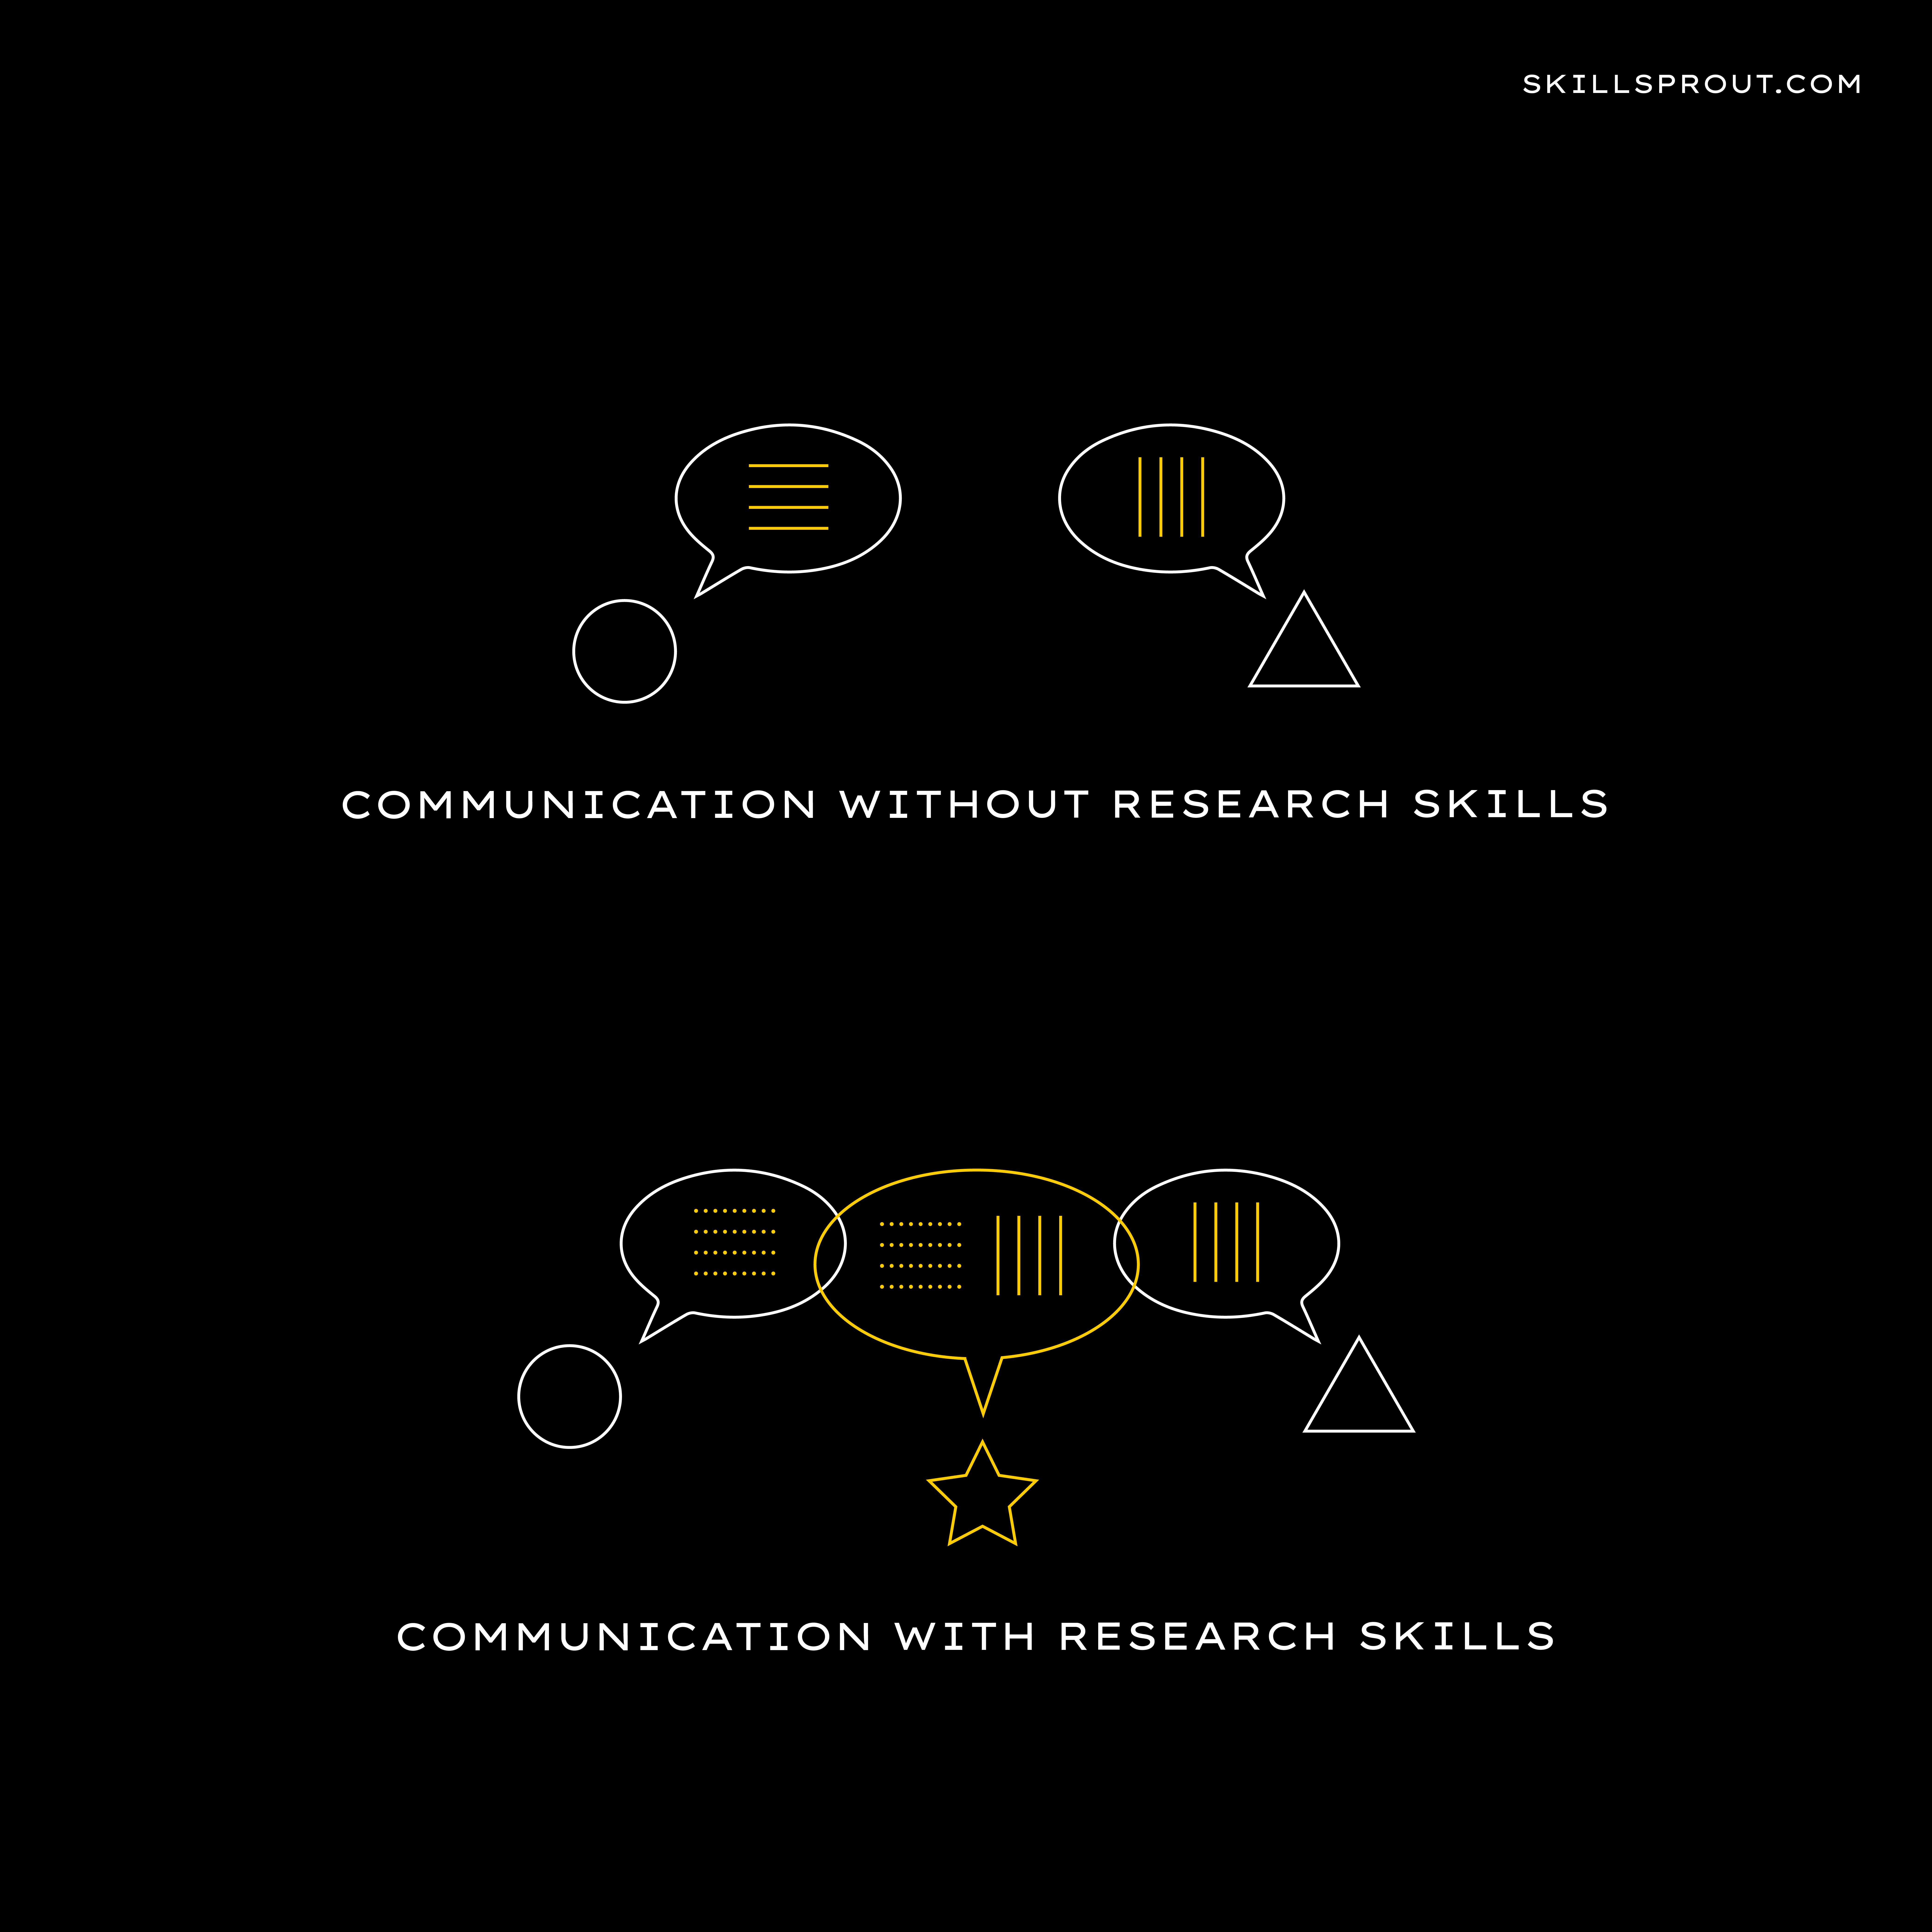 Communication with and without research skills